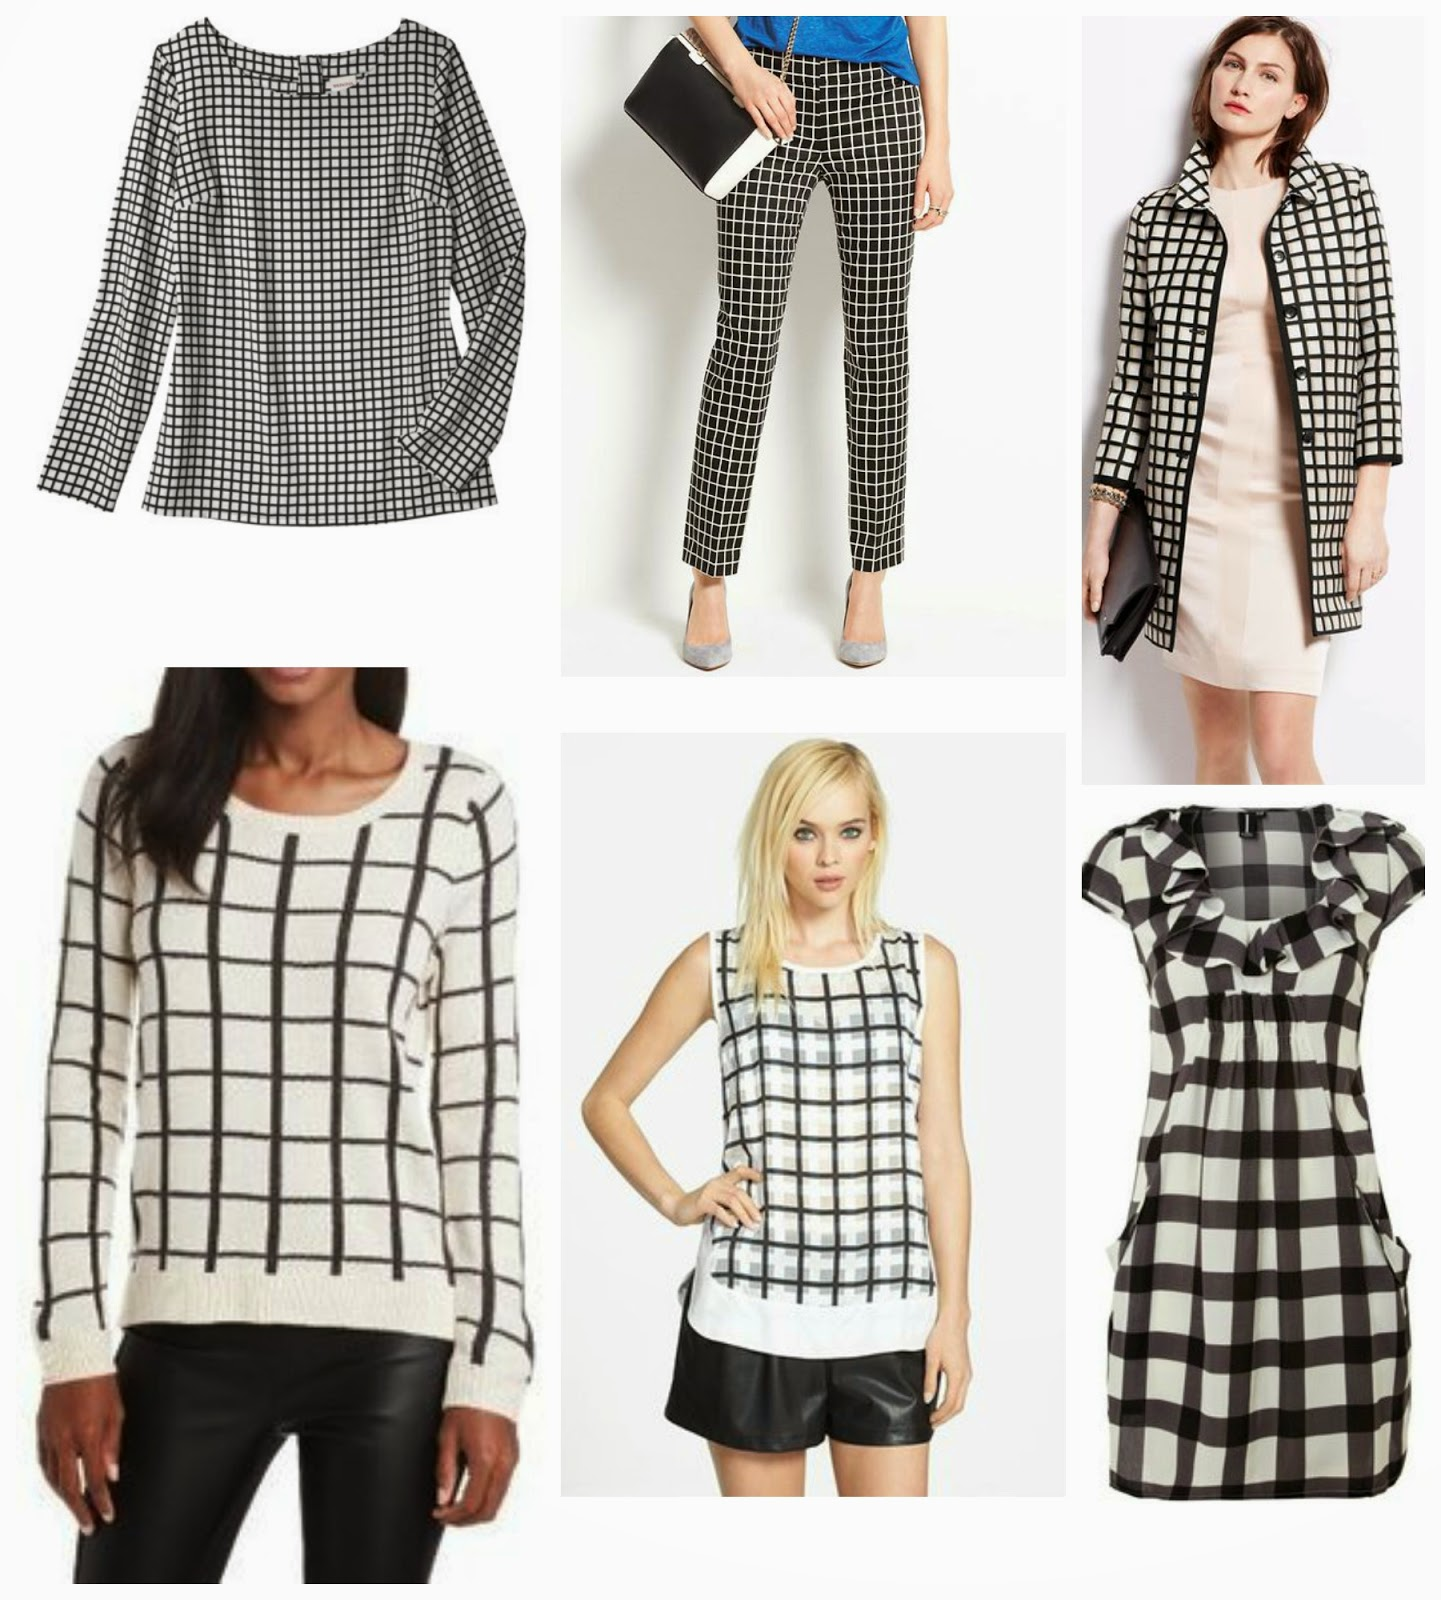 Black and white, merona Target window pane blouse, Loft Jacket, Window pane sweater